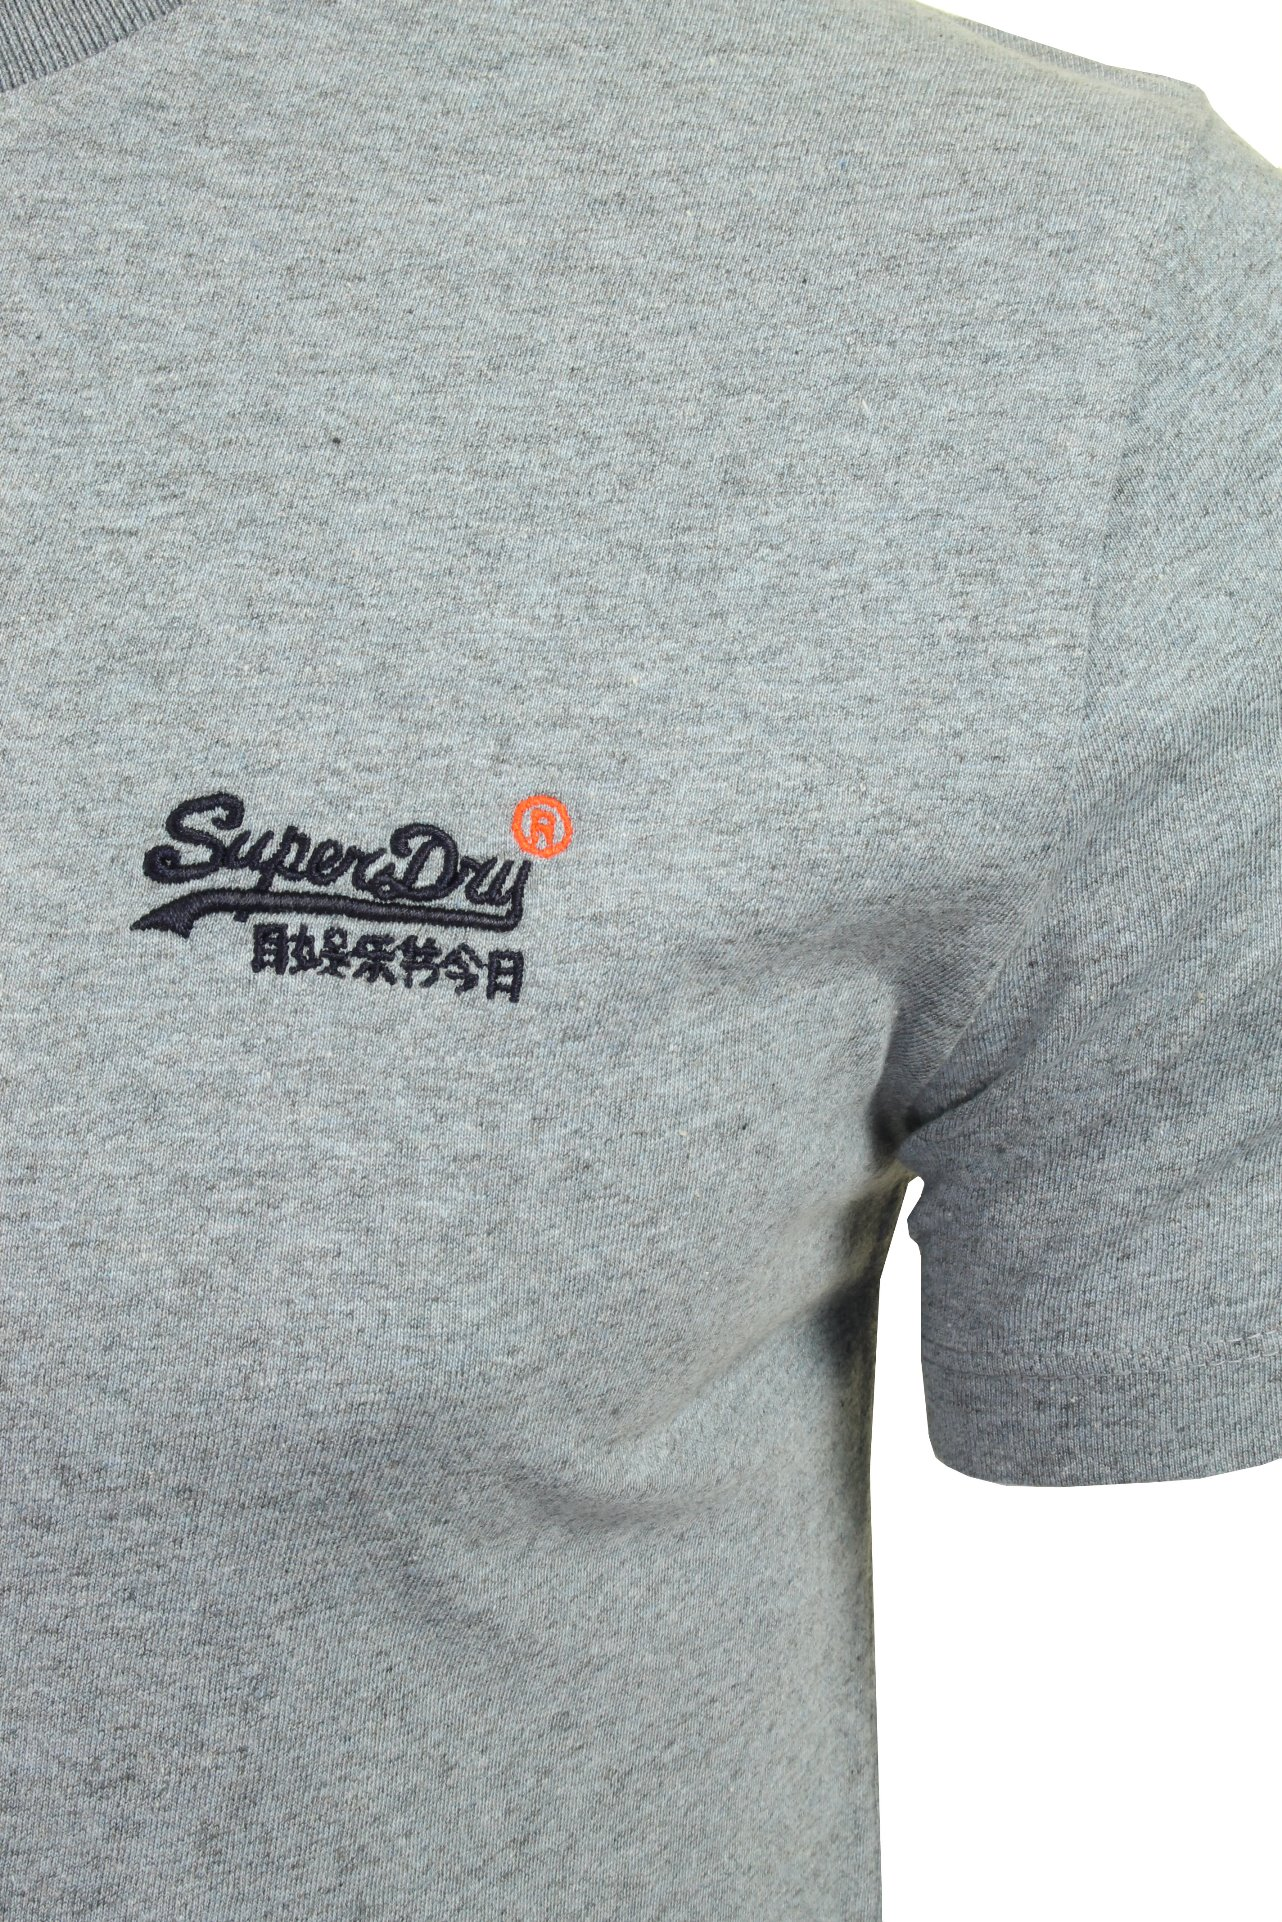 Superdry-Mens-039-Vintage-Embroidery-039-Short-Sleeved-T-Shirt thumbnail 4